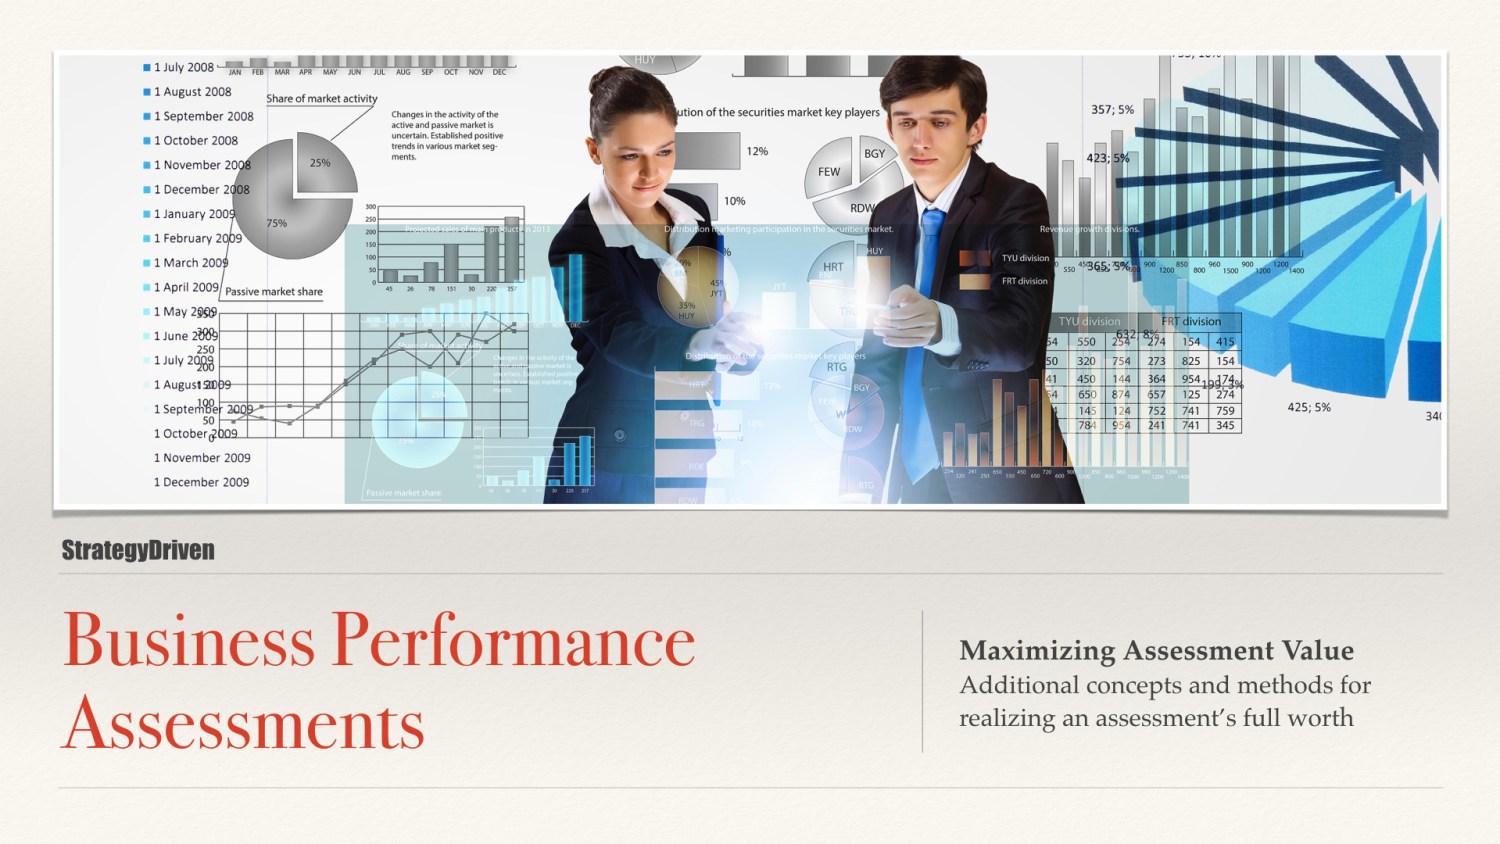 Maximizing Assessment Value | Maximizing the Value of Business Performance Assessments Training Program | Digital Products Platform | Nathan Ives